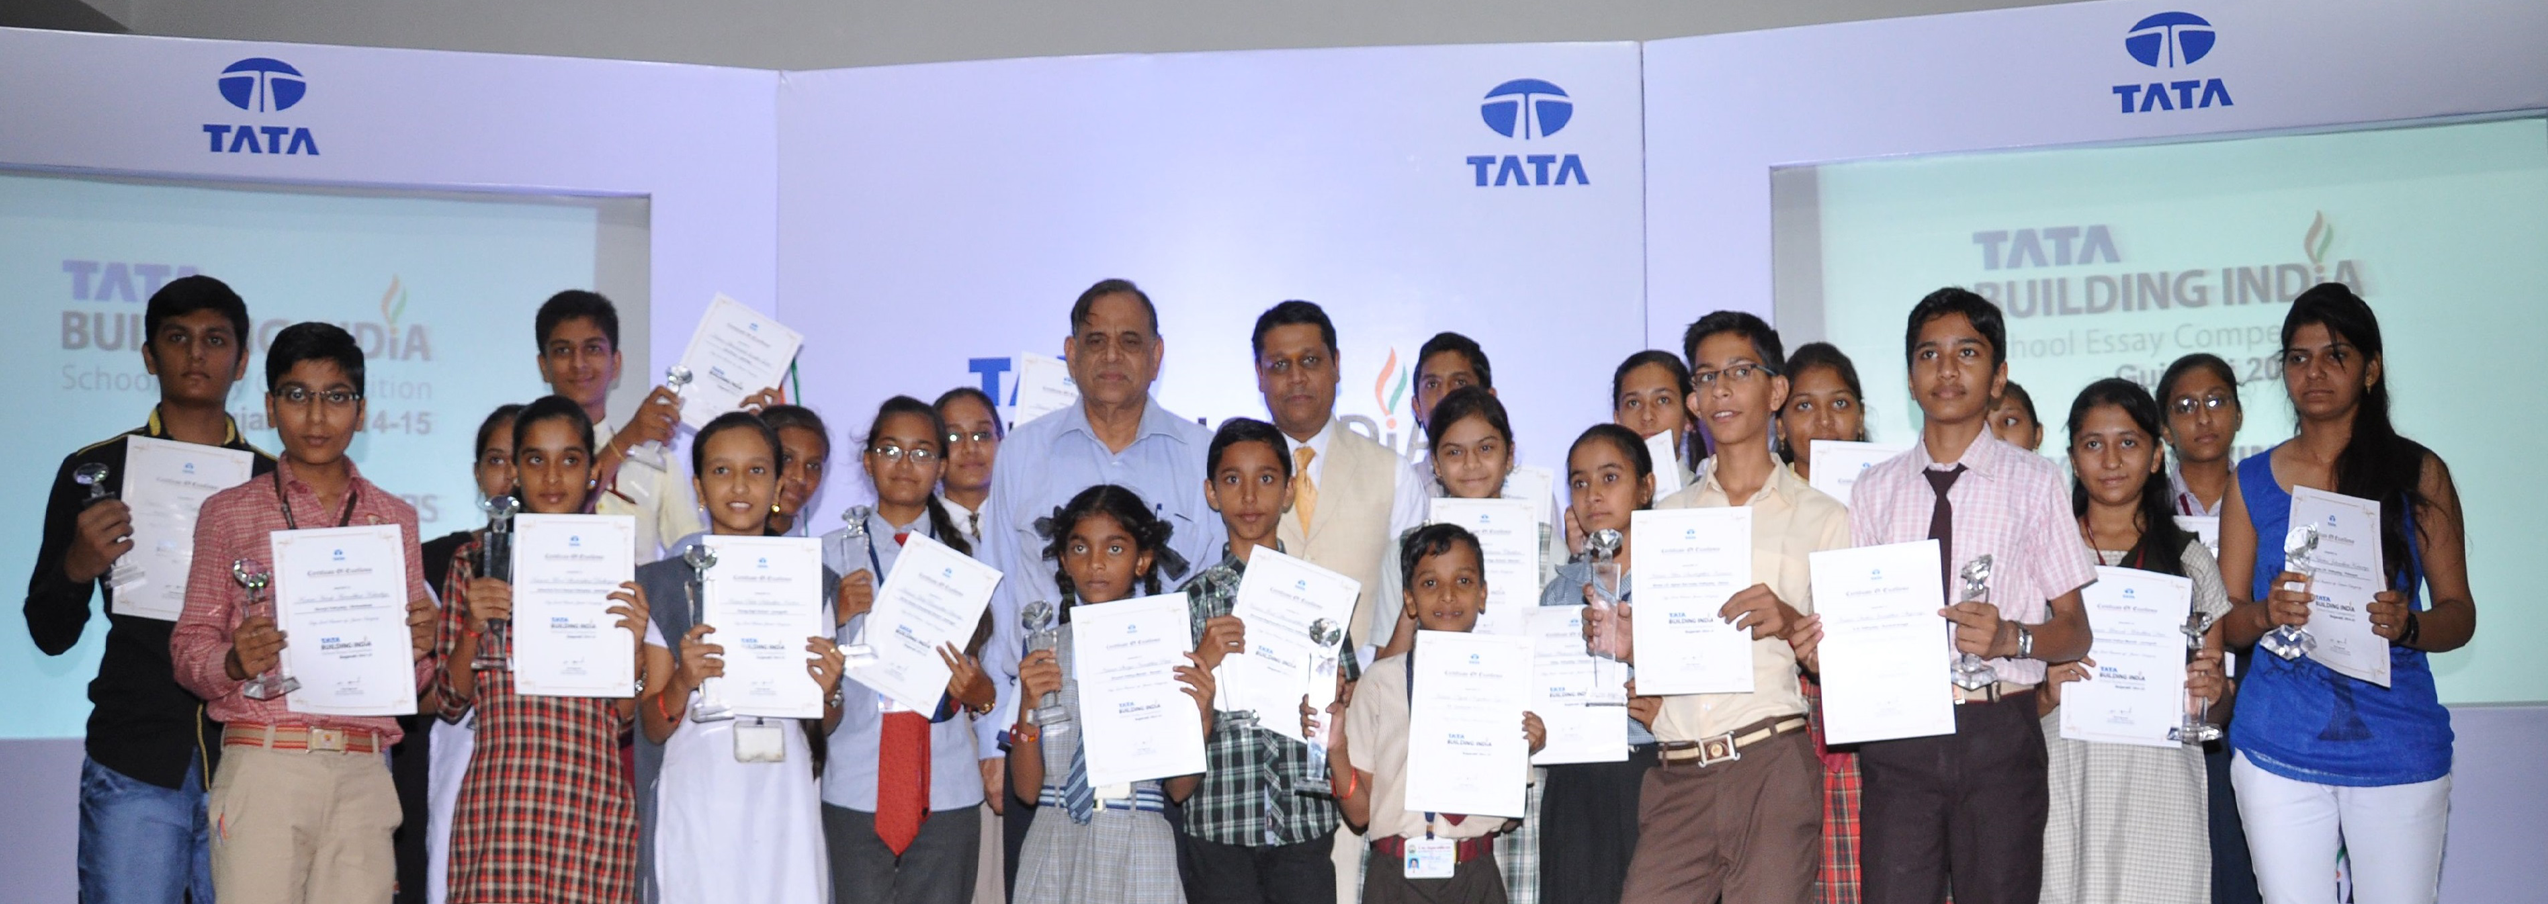 Tata building india essay competition 2015 winners